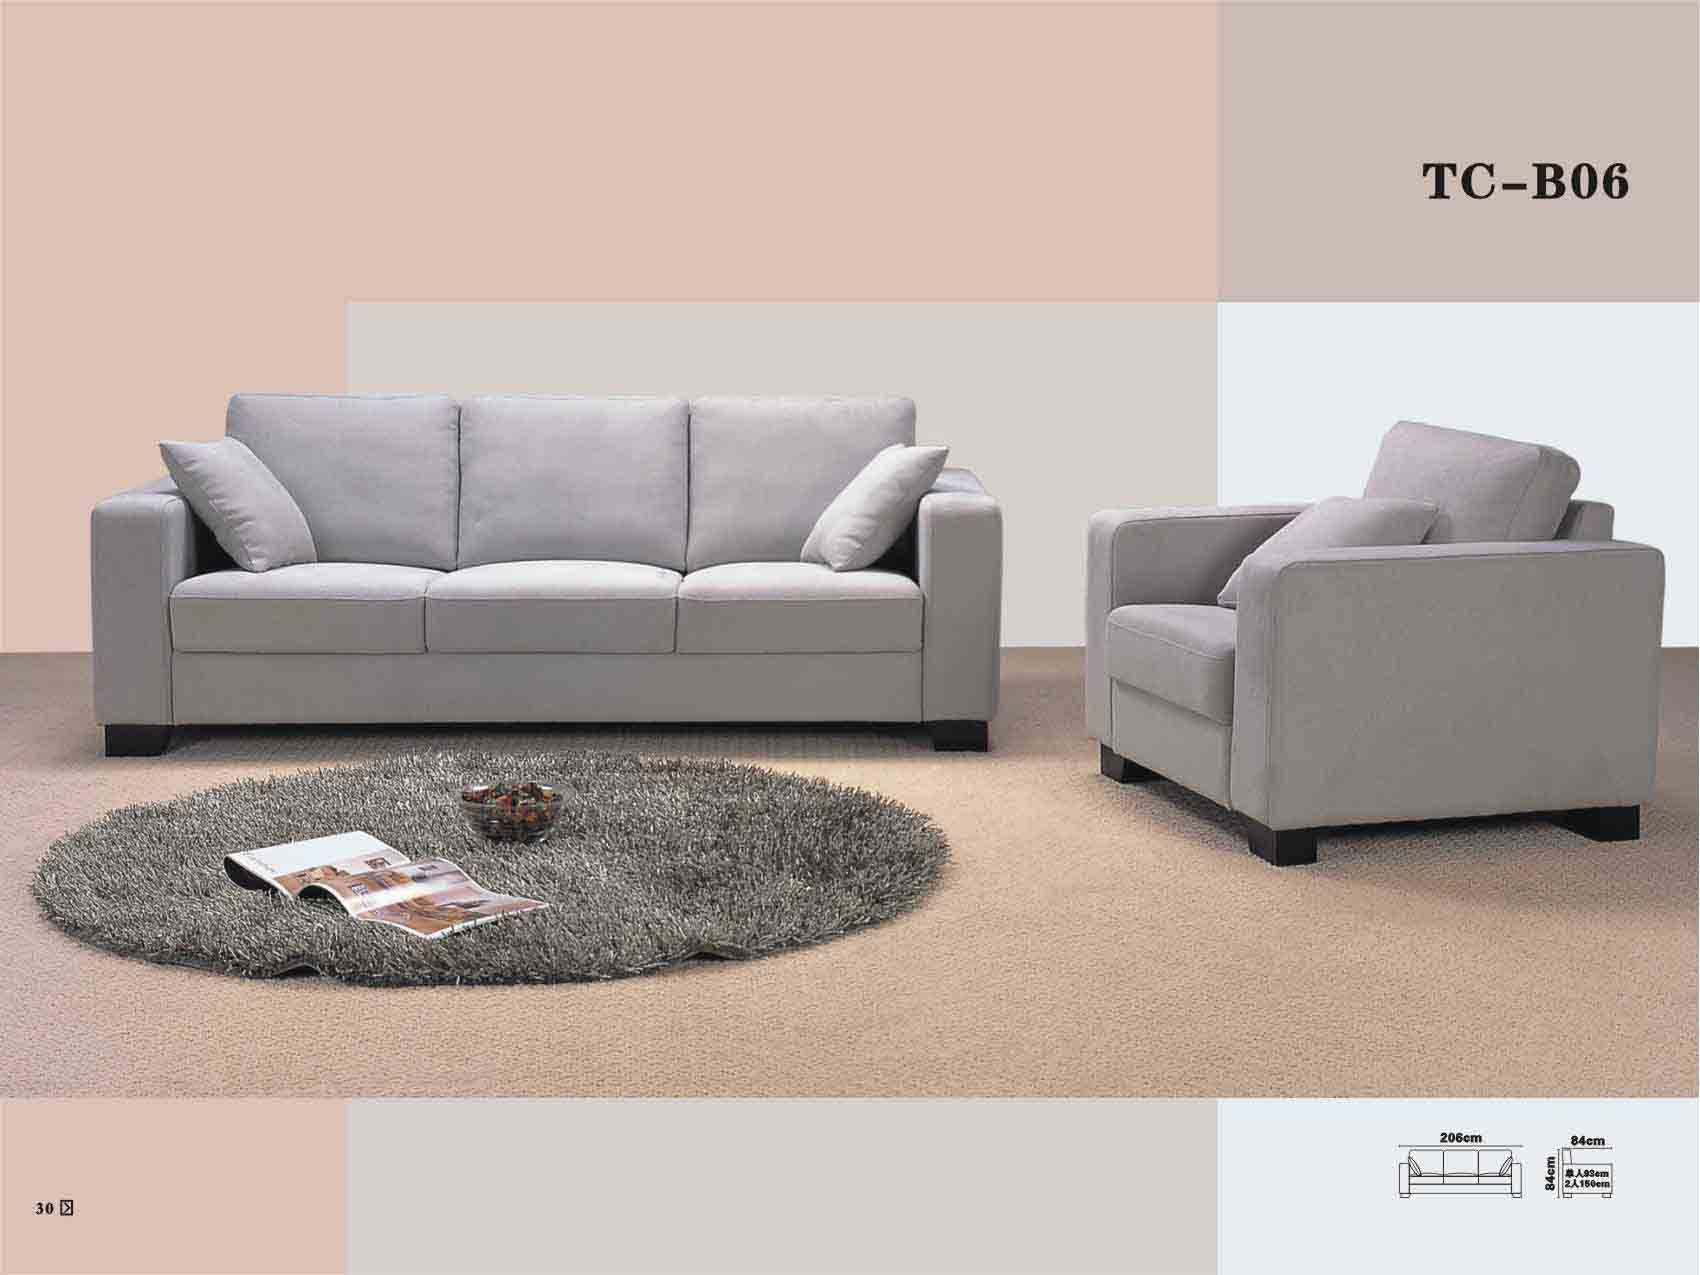 China Contemporary Modern Sofa Tc B06 China Sofa Fabric Sofa